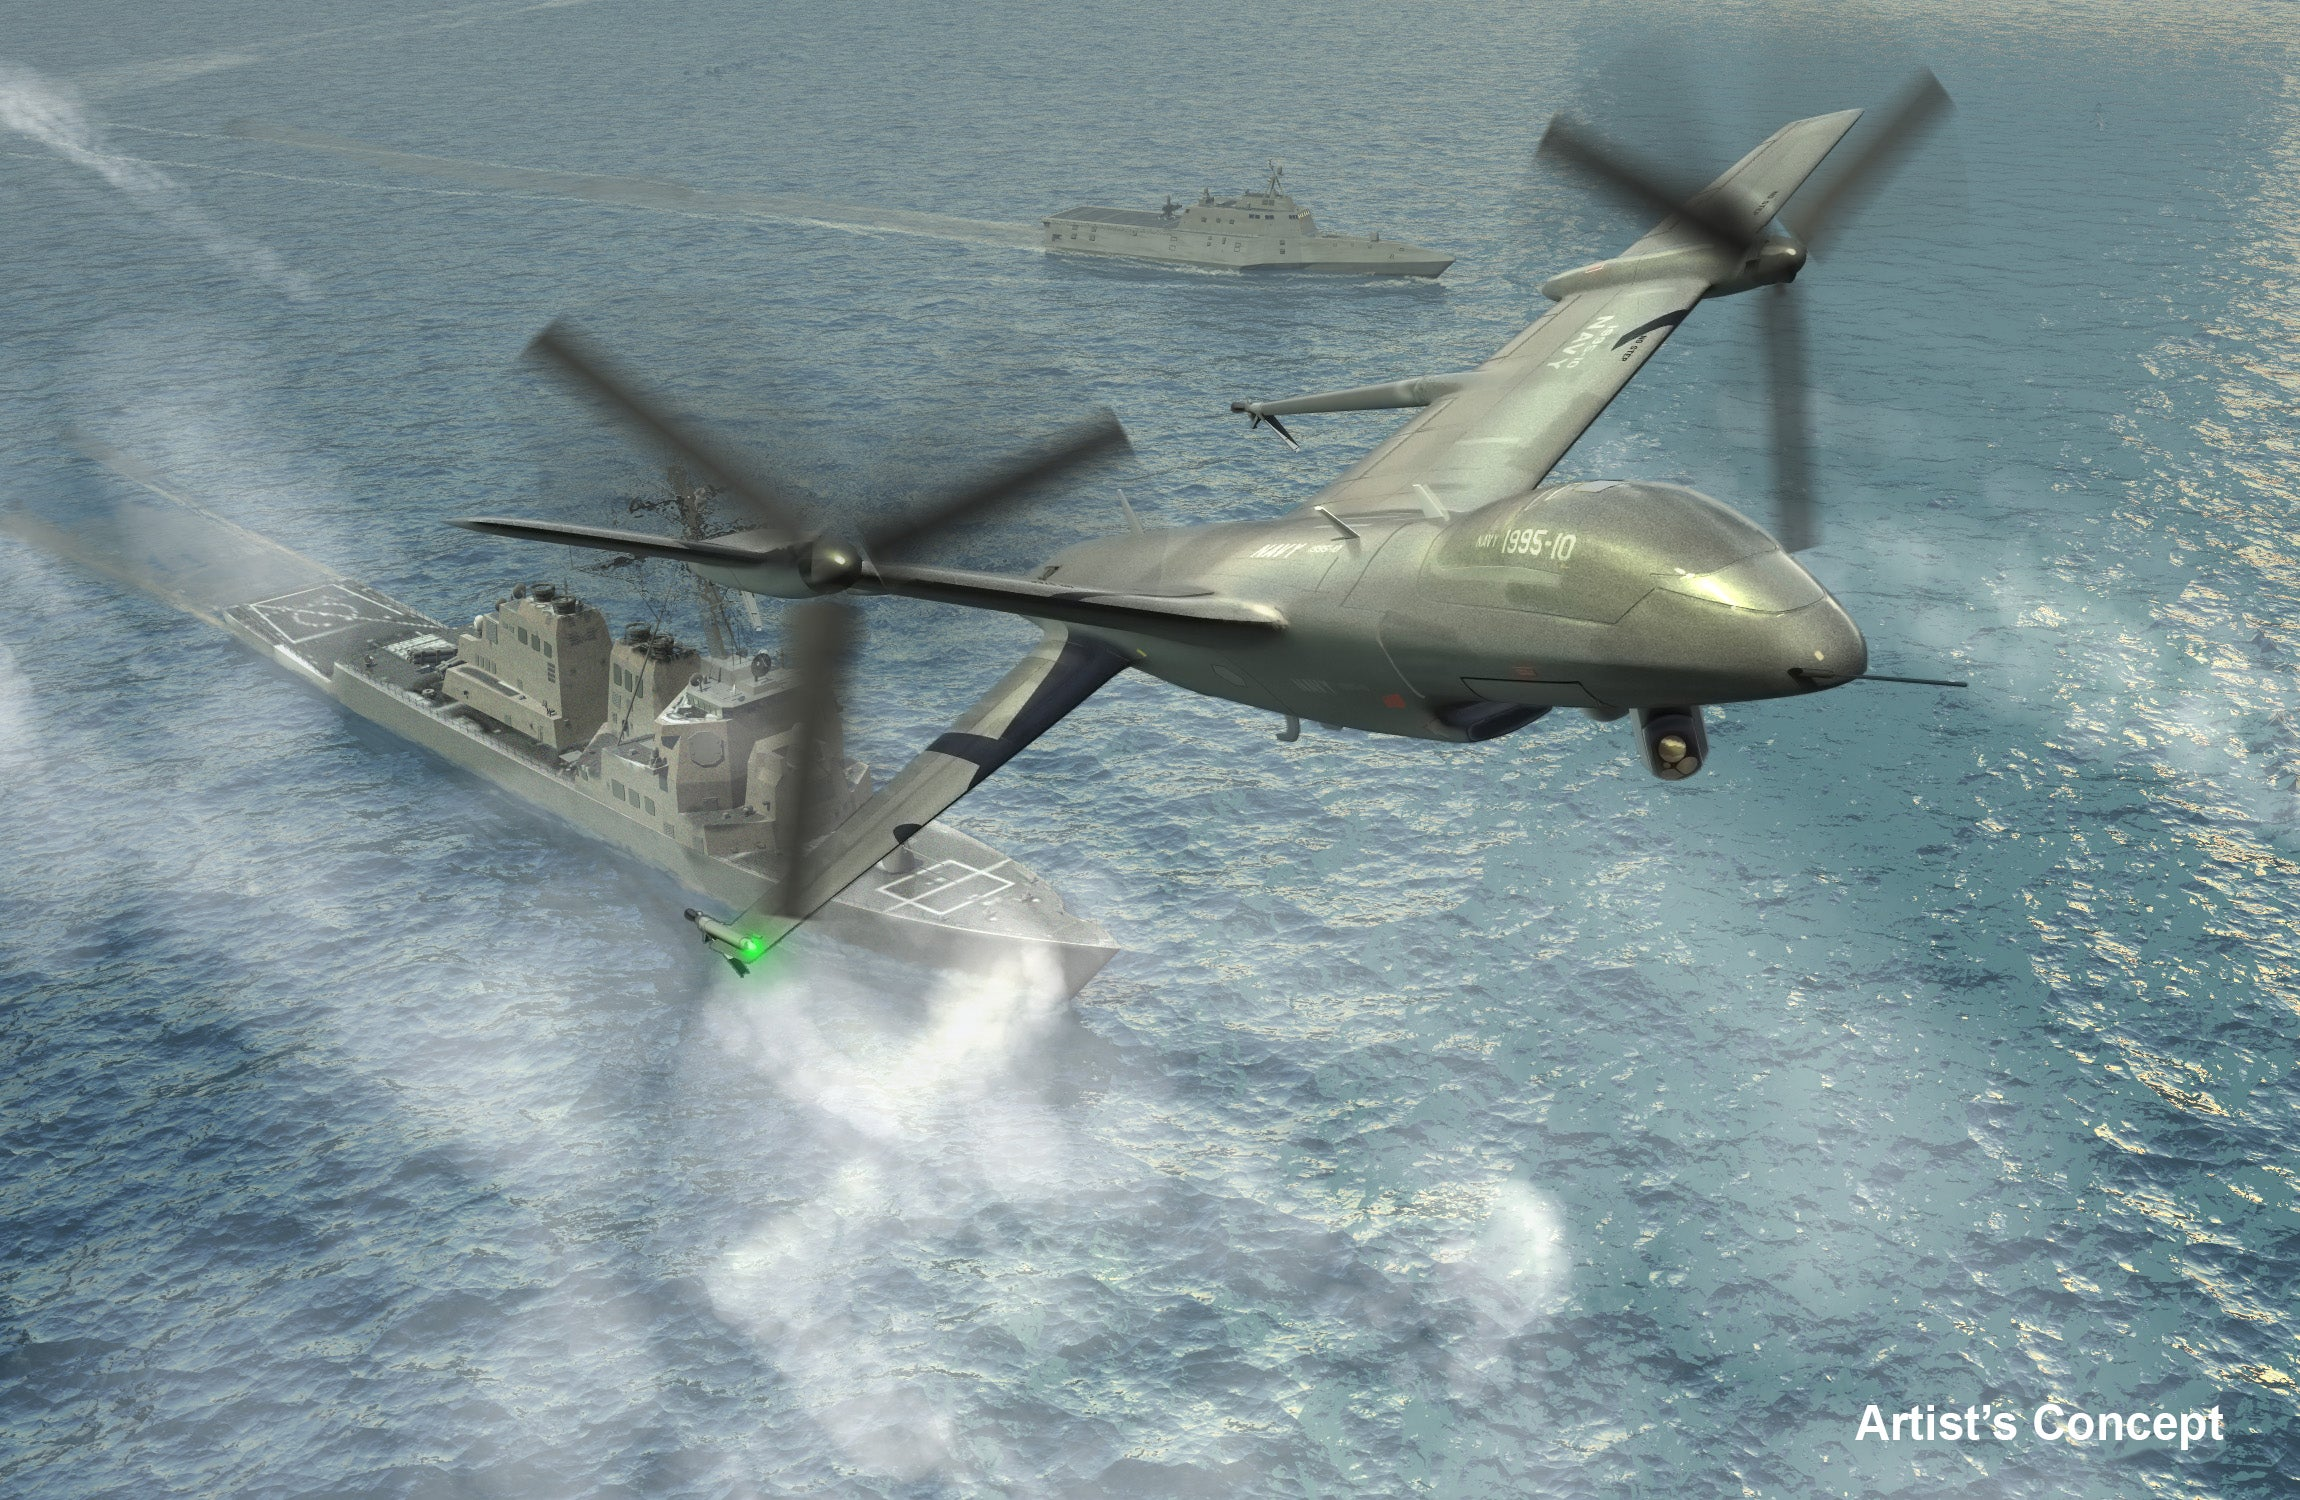 Navy's Long-Range Drone Will Patrol The Oceans Of The Future